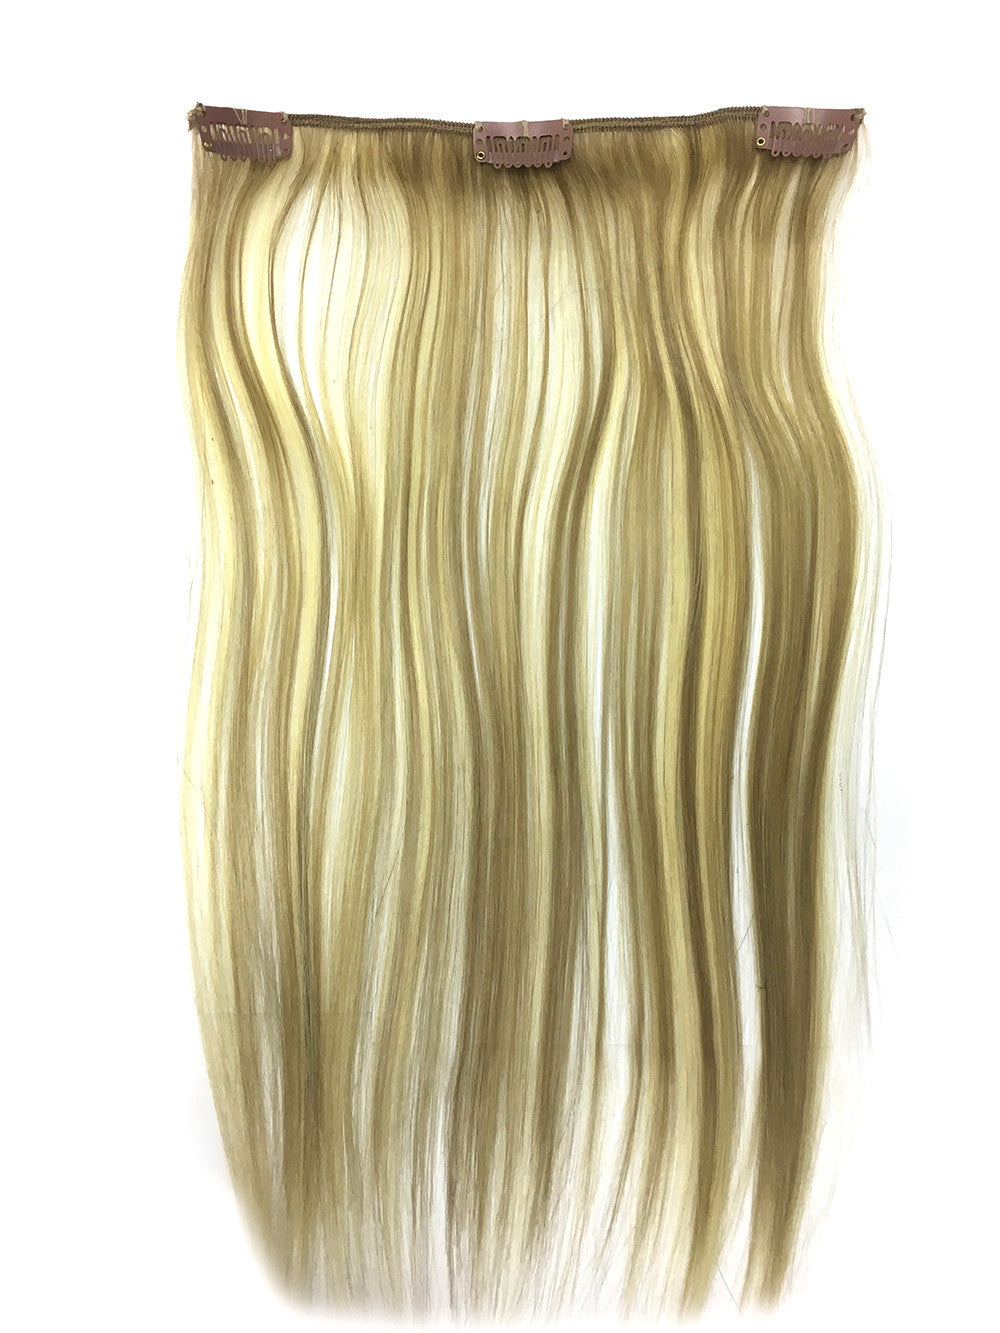 "Clip on Human Hair in Straight 22"" - Hairesthetic"